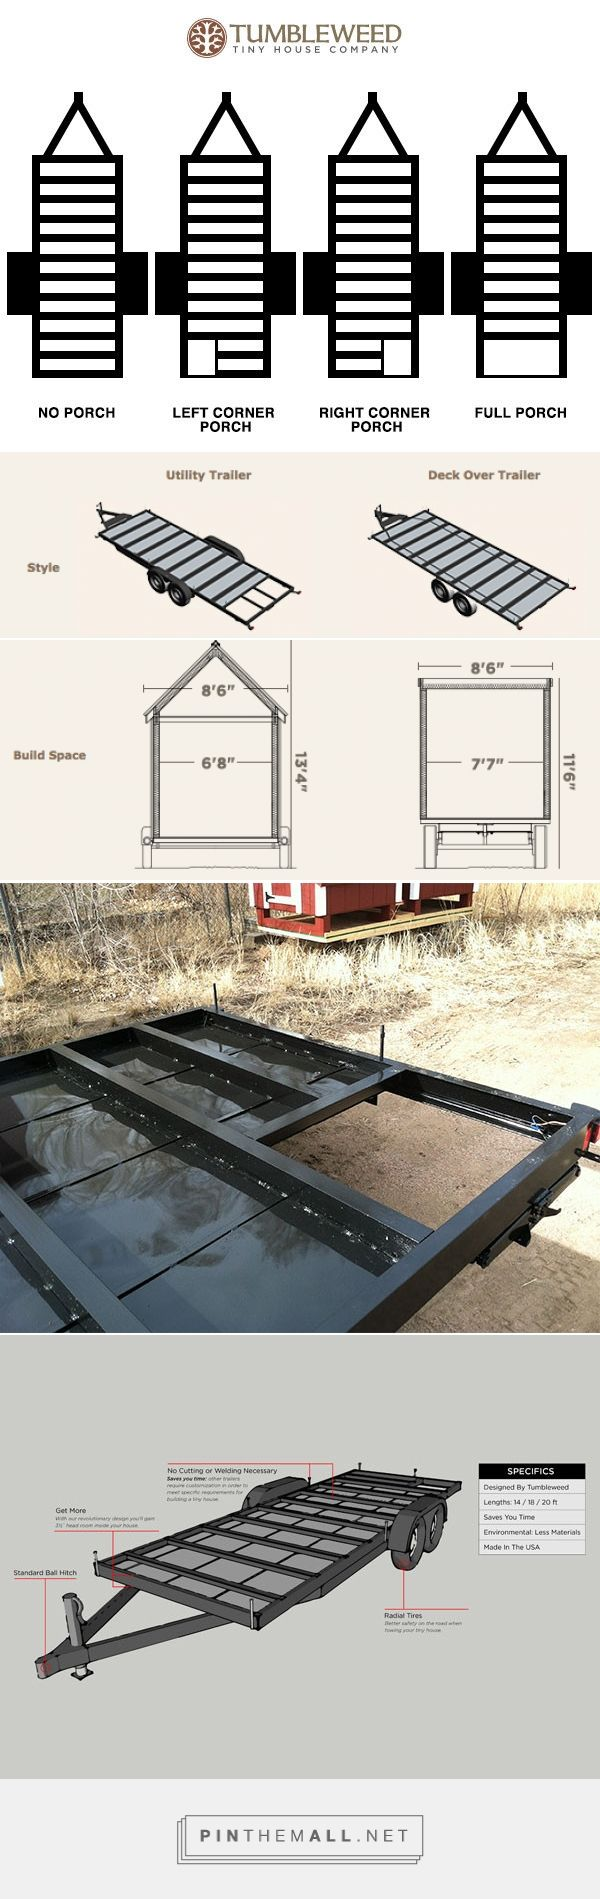 Tumbleweed Trailers to Build your Tiny House on.